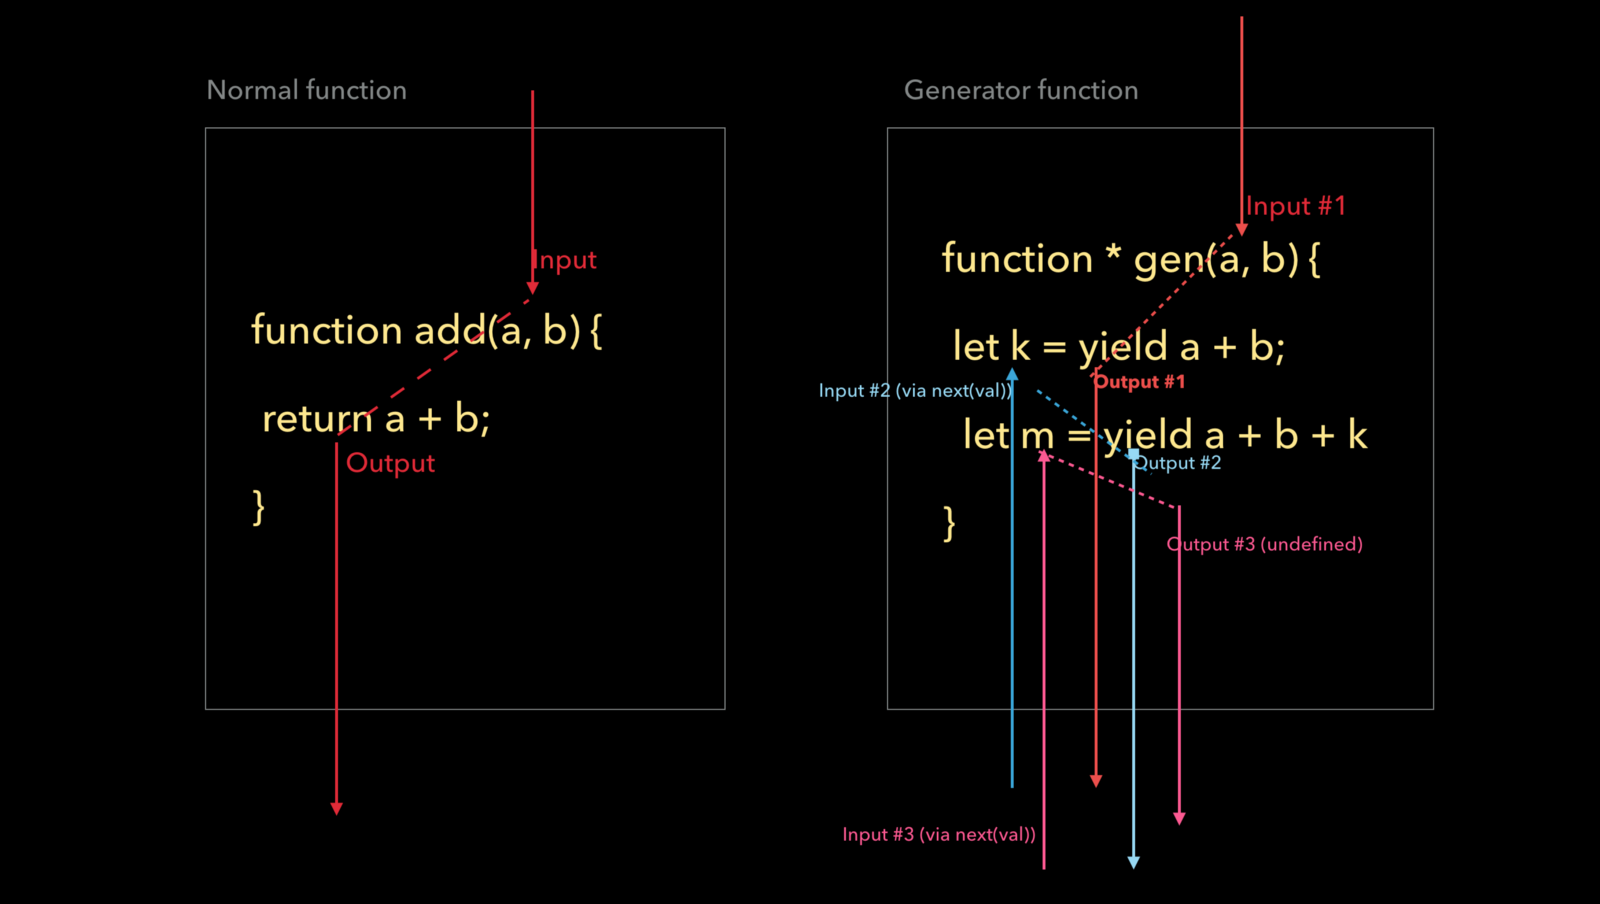 Normal function vs Generator function